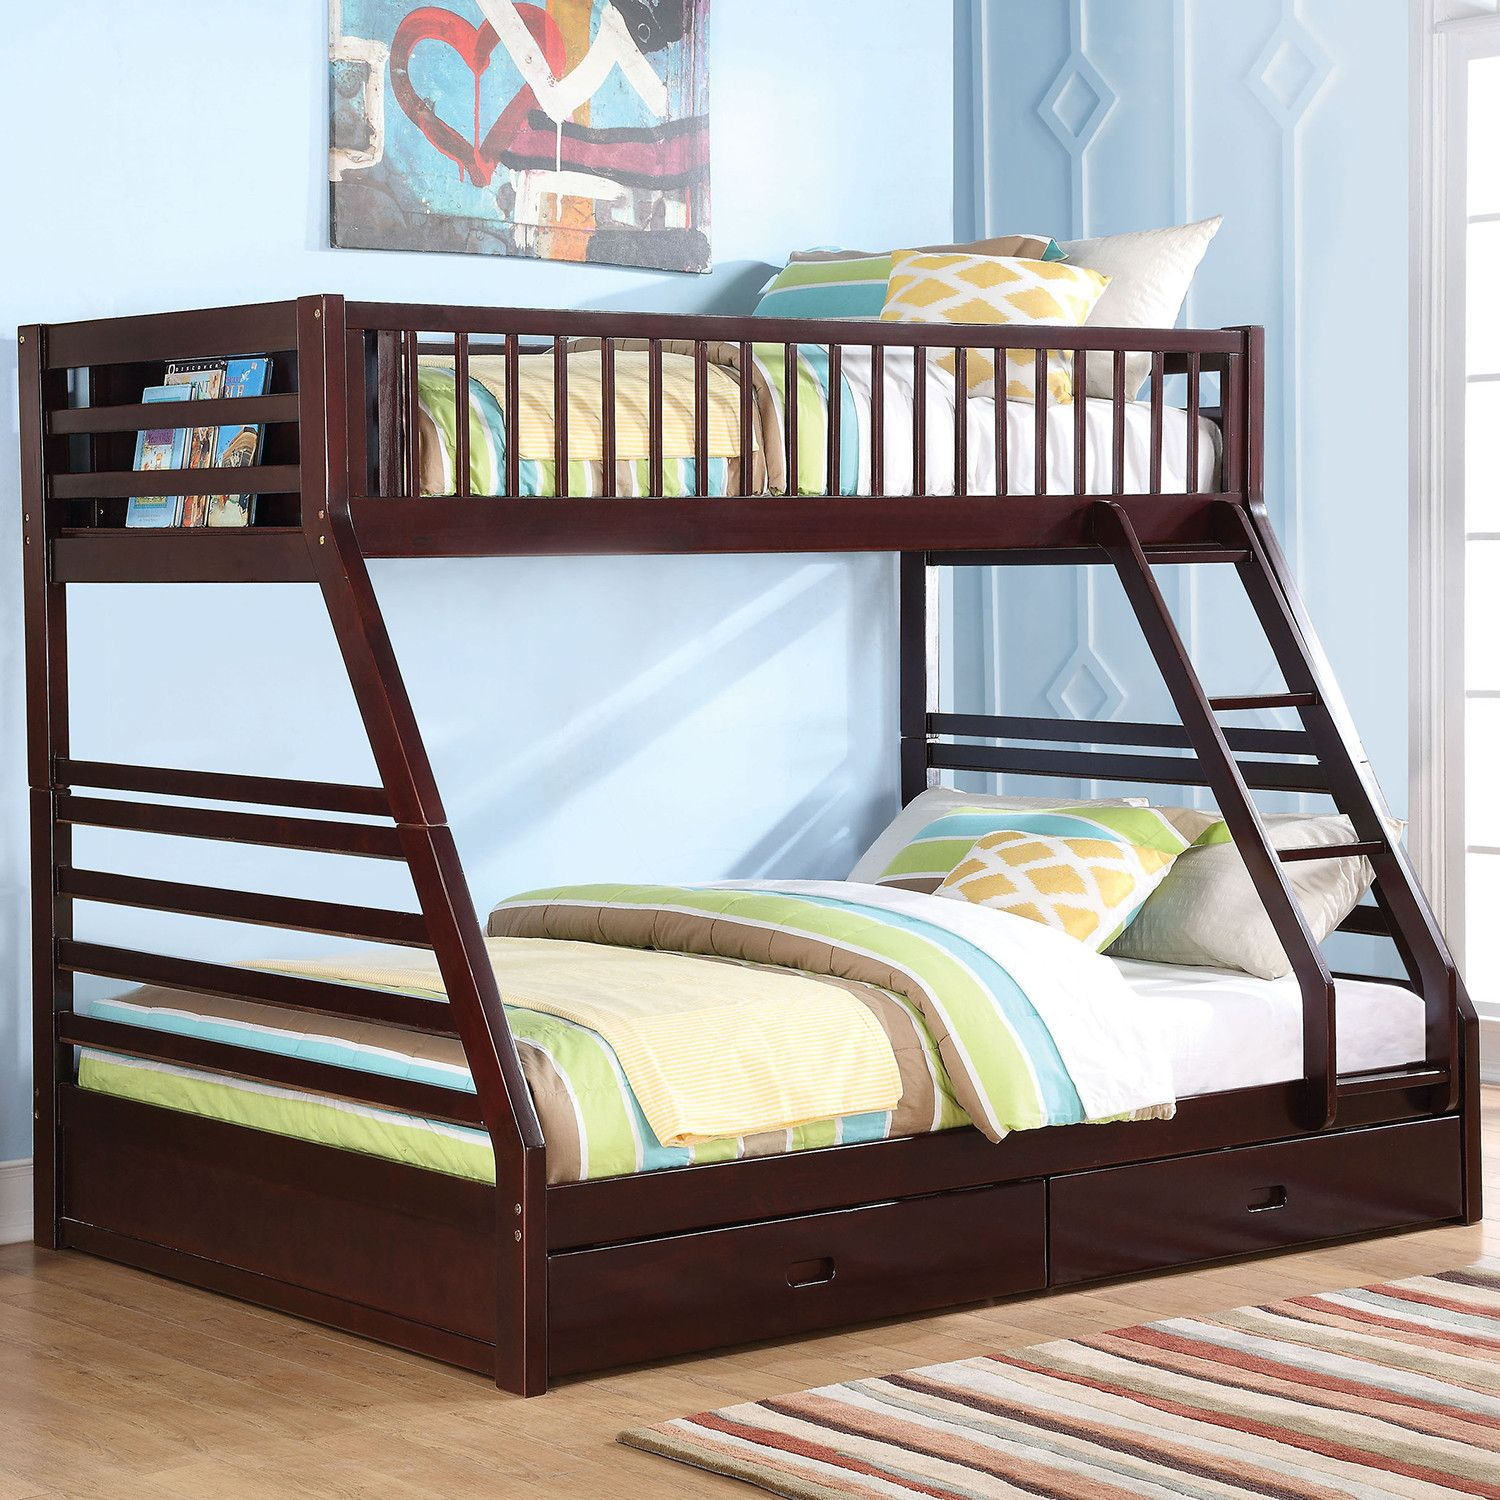 Jason XL Twin over Queen Bunk Bed w/ Drawer in Espresso by